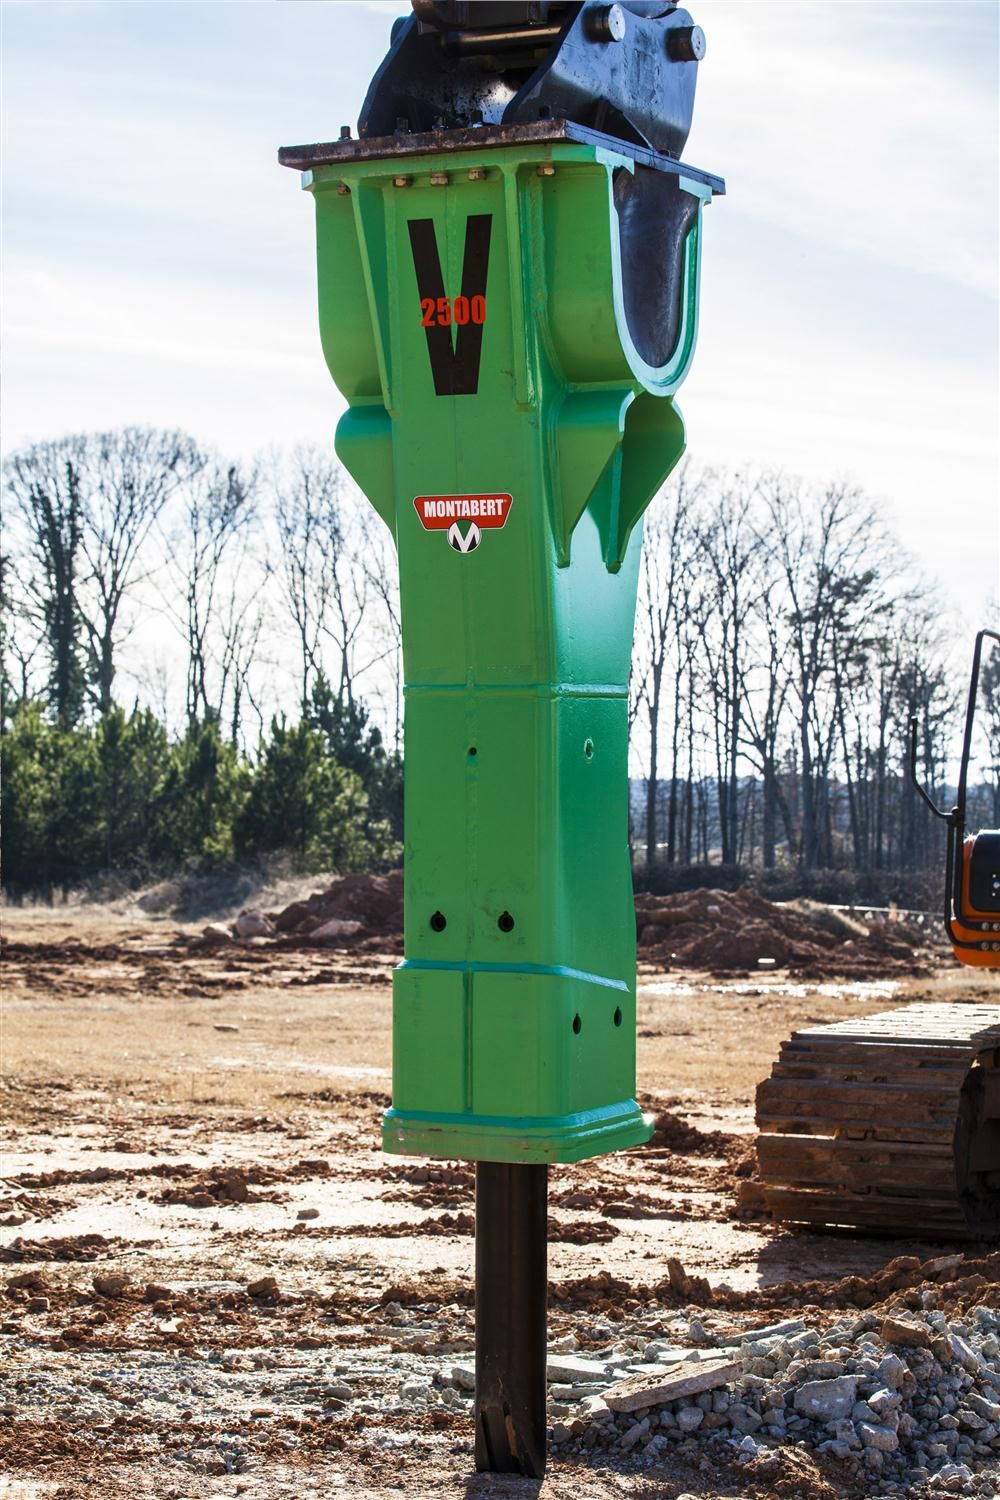 The V1800 and V2500 feature a new heavy-duty housing that reflects the design of larger two-speed models, as well as the design of fully variable Montabert hydraulic breaker models. In addition, the hydraulic breakers' fully enclosed heavy-duty crad